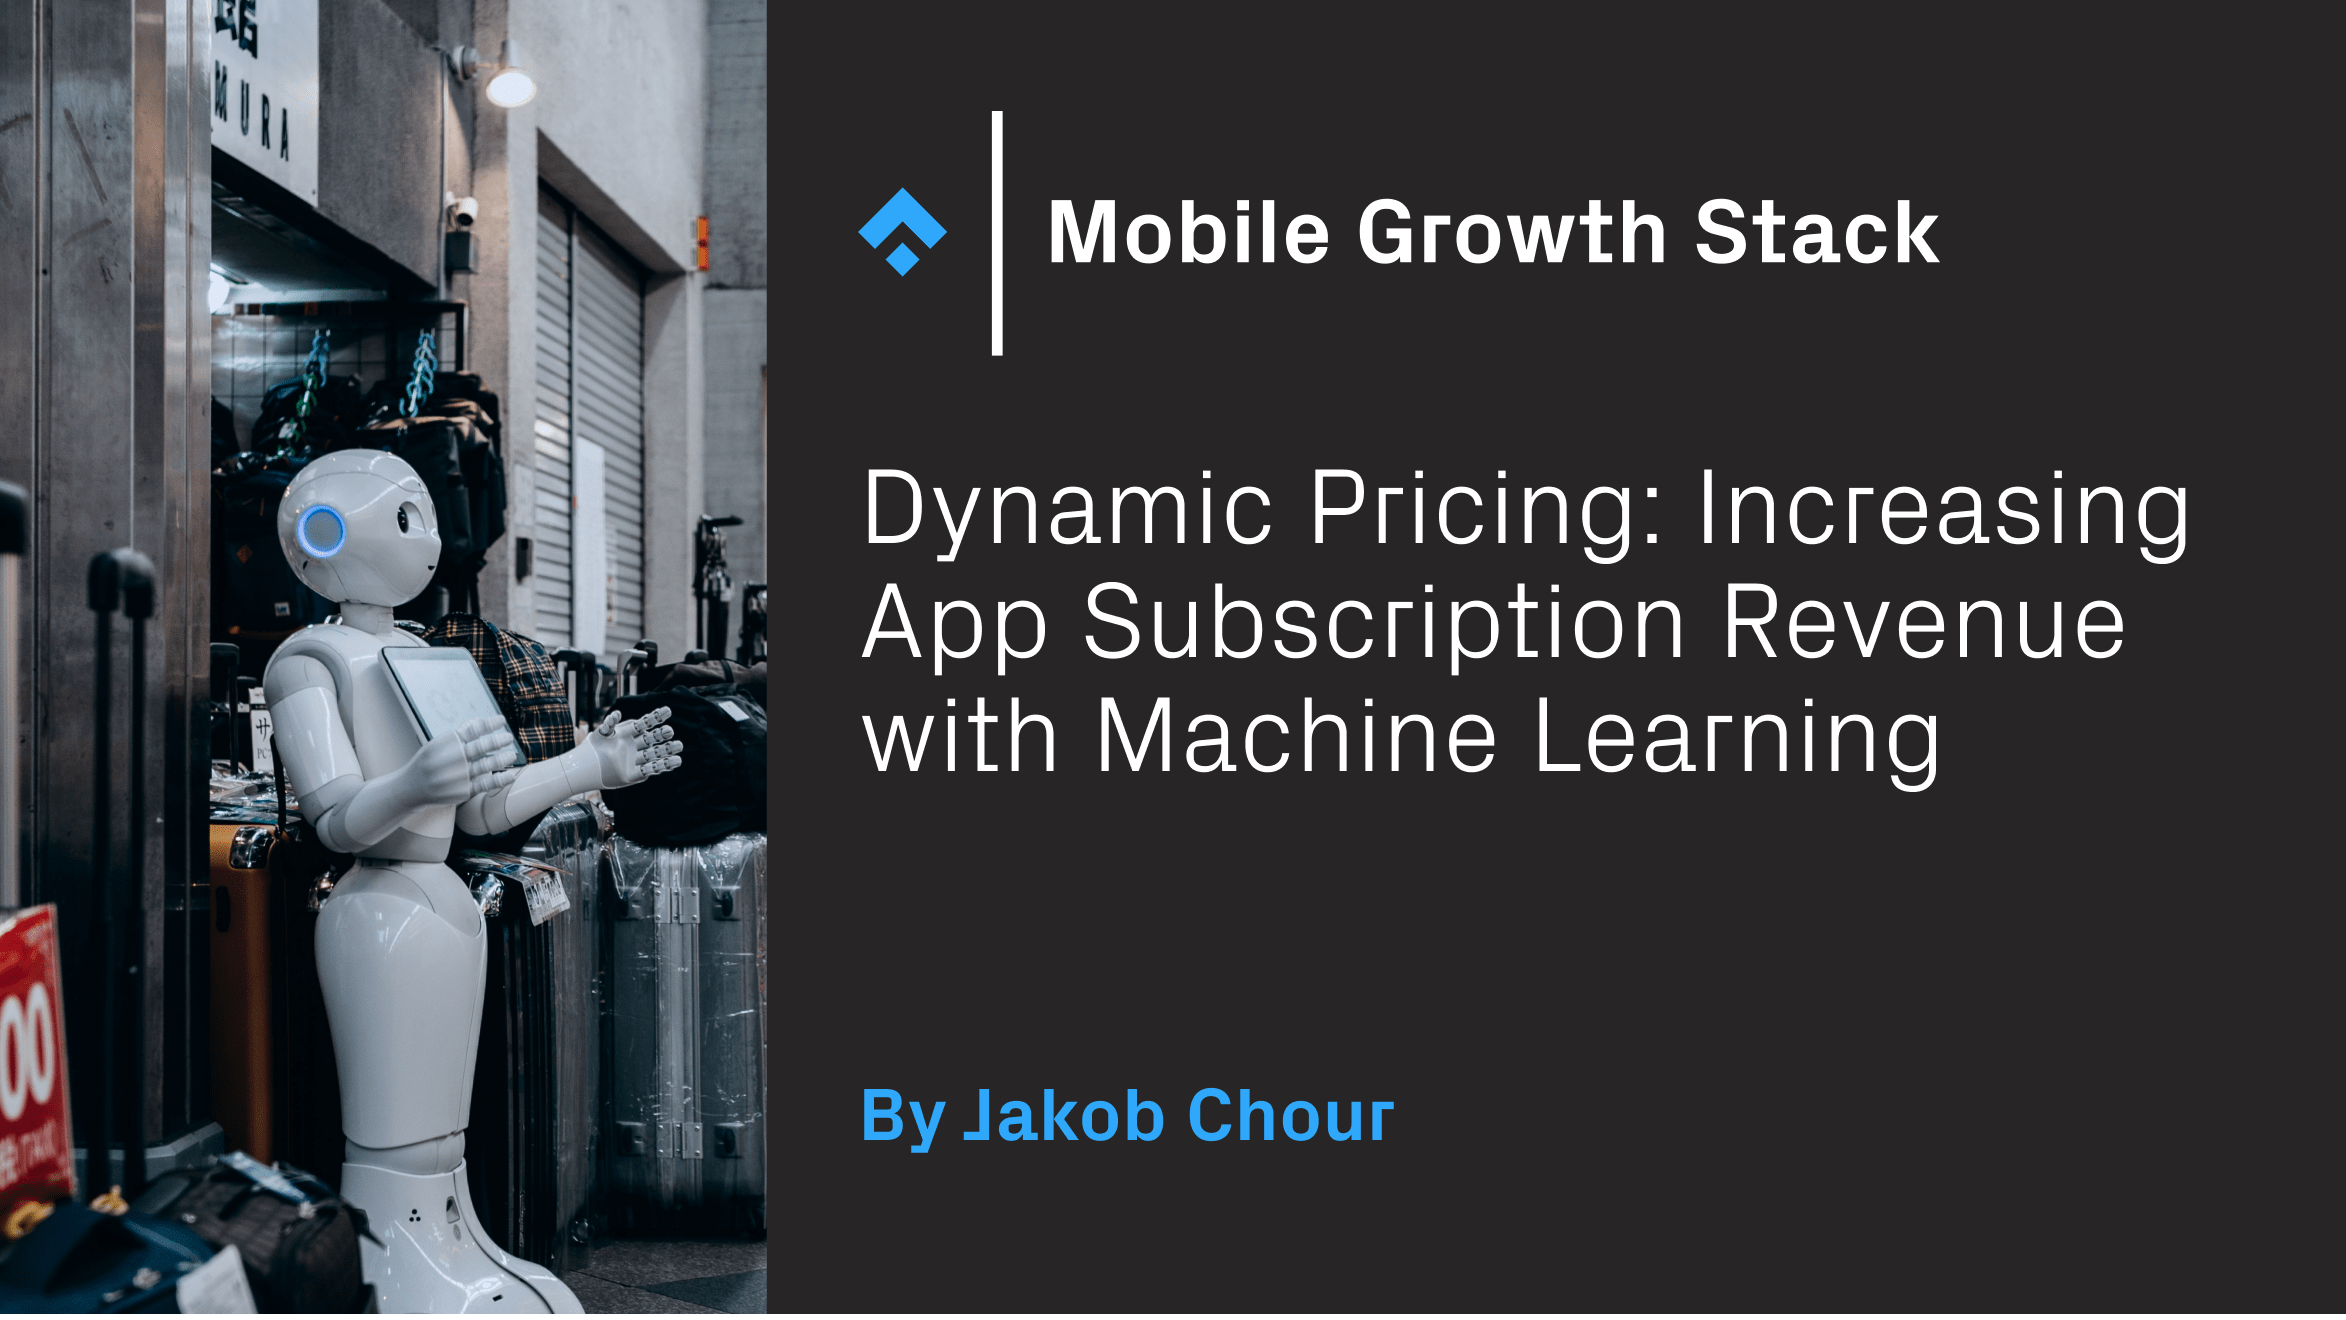 Dynamic Pricing: Increasing App Subscription Revenue with Machine Learning